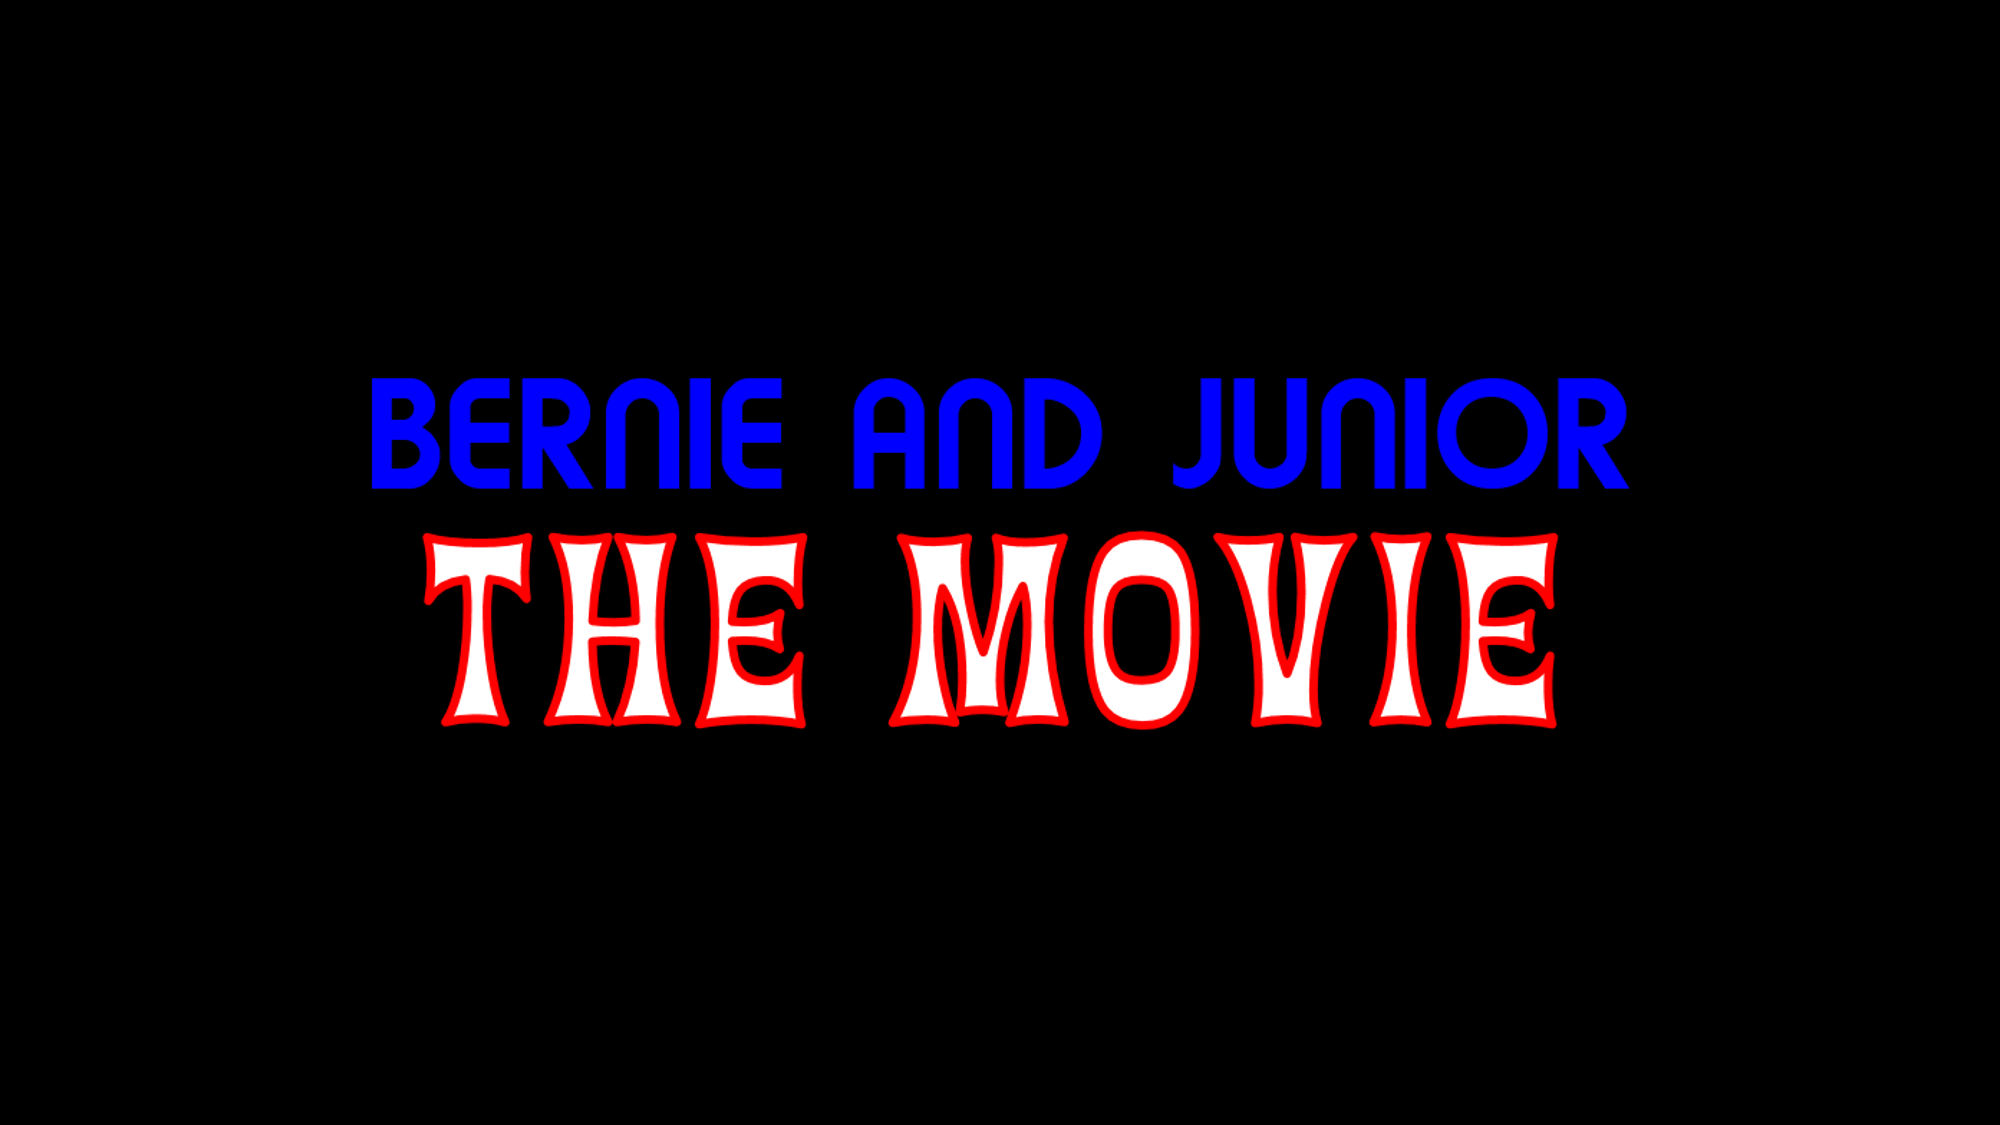 Bernie and Junior: The Movie